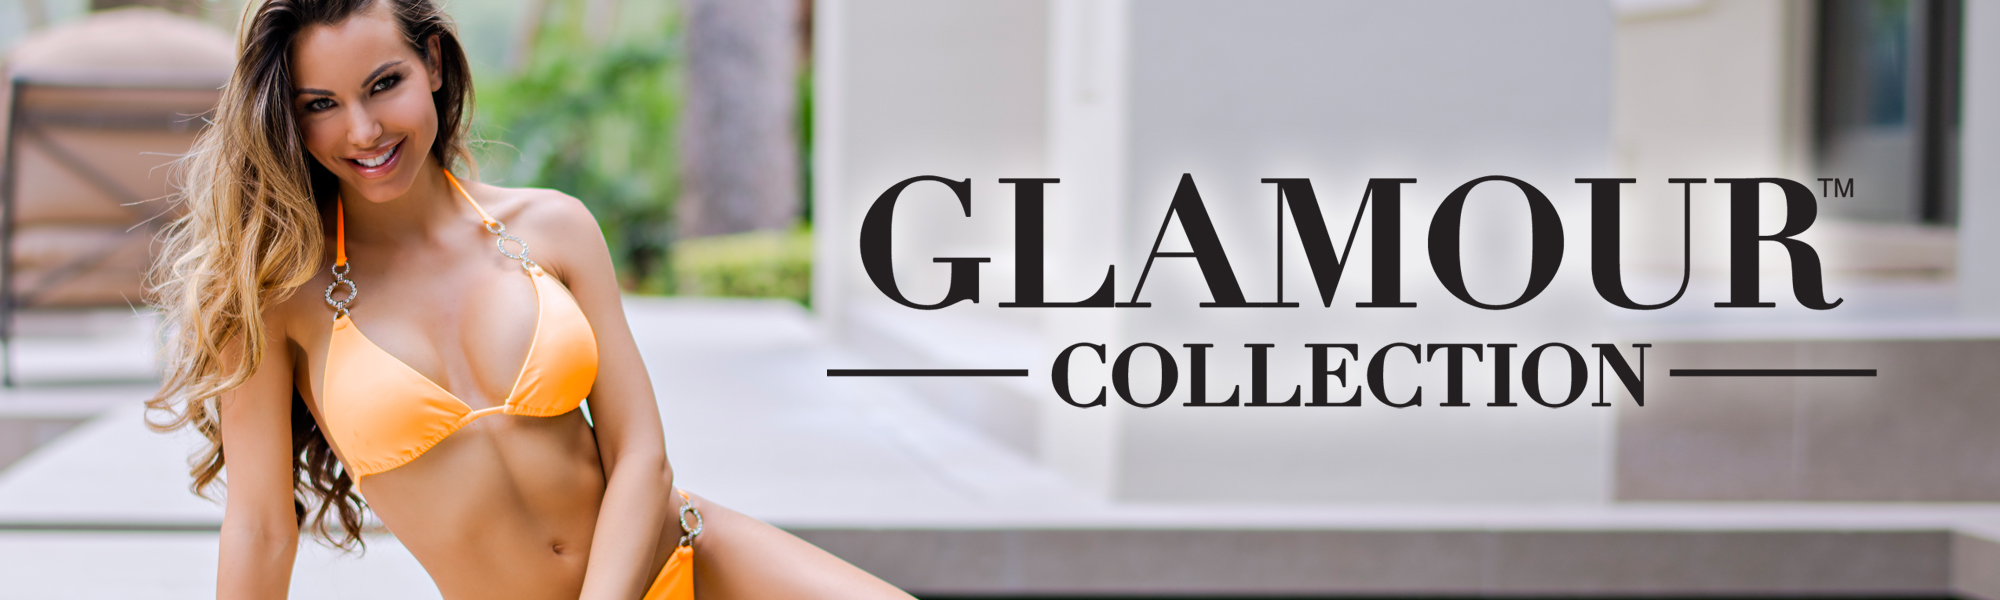 Glamour Collection